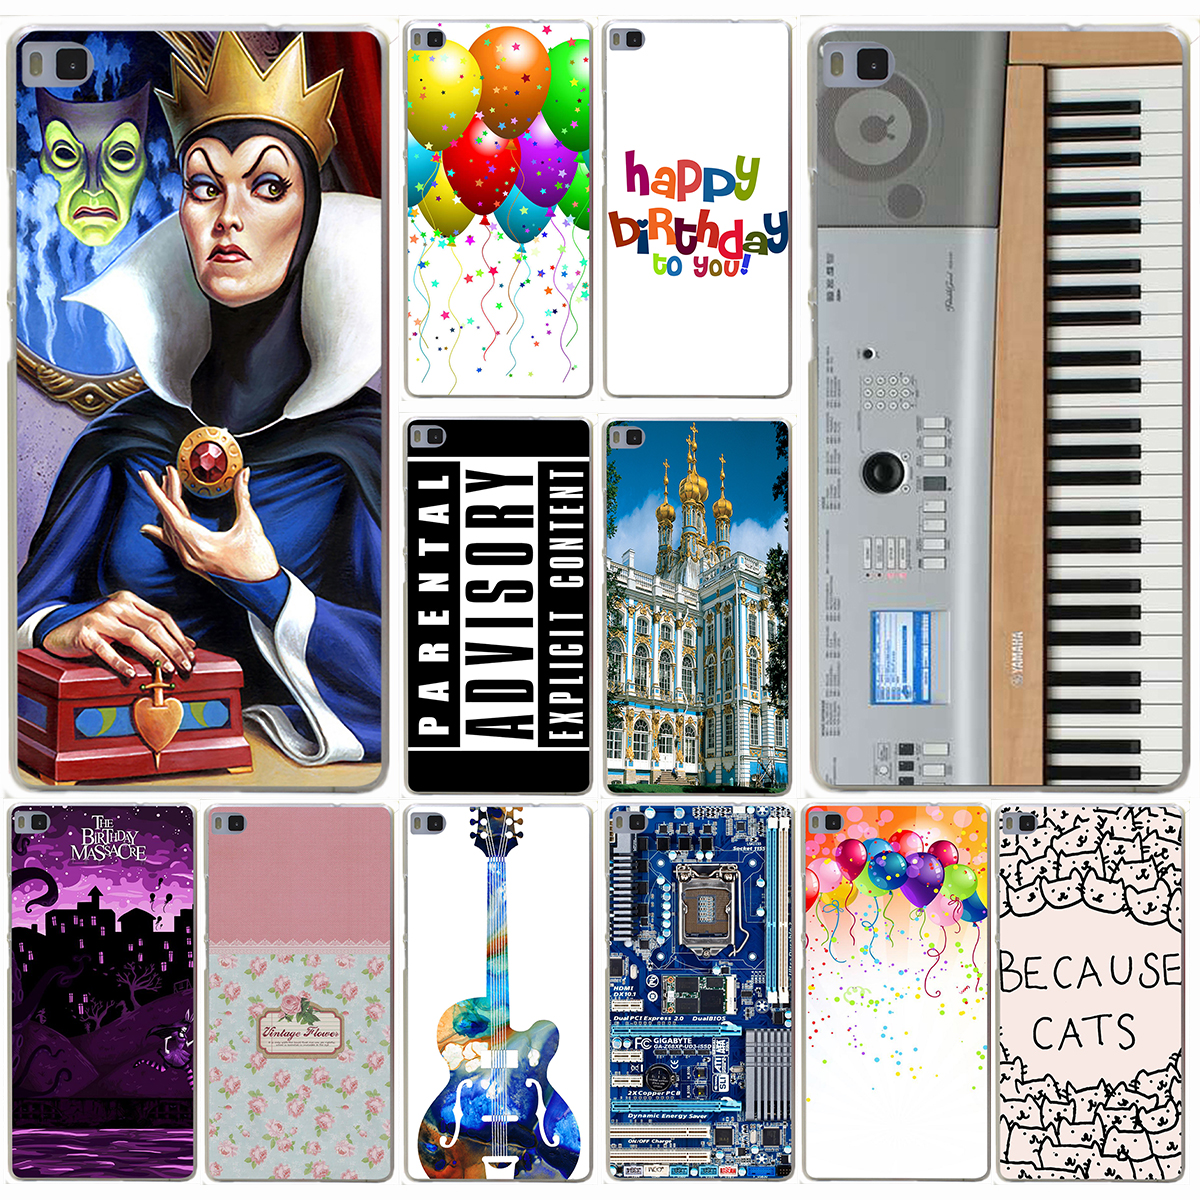 Keyboard Digital Piano Vintage floral love is the flower Hard Case for Huawei P9 P8 Lite P9 Plus P6 P7 G7 & Honor 6 7 4C 4X